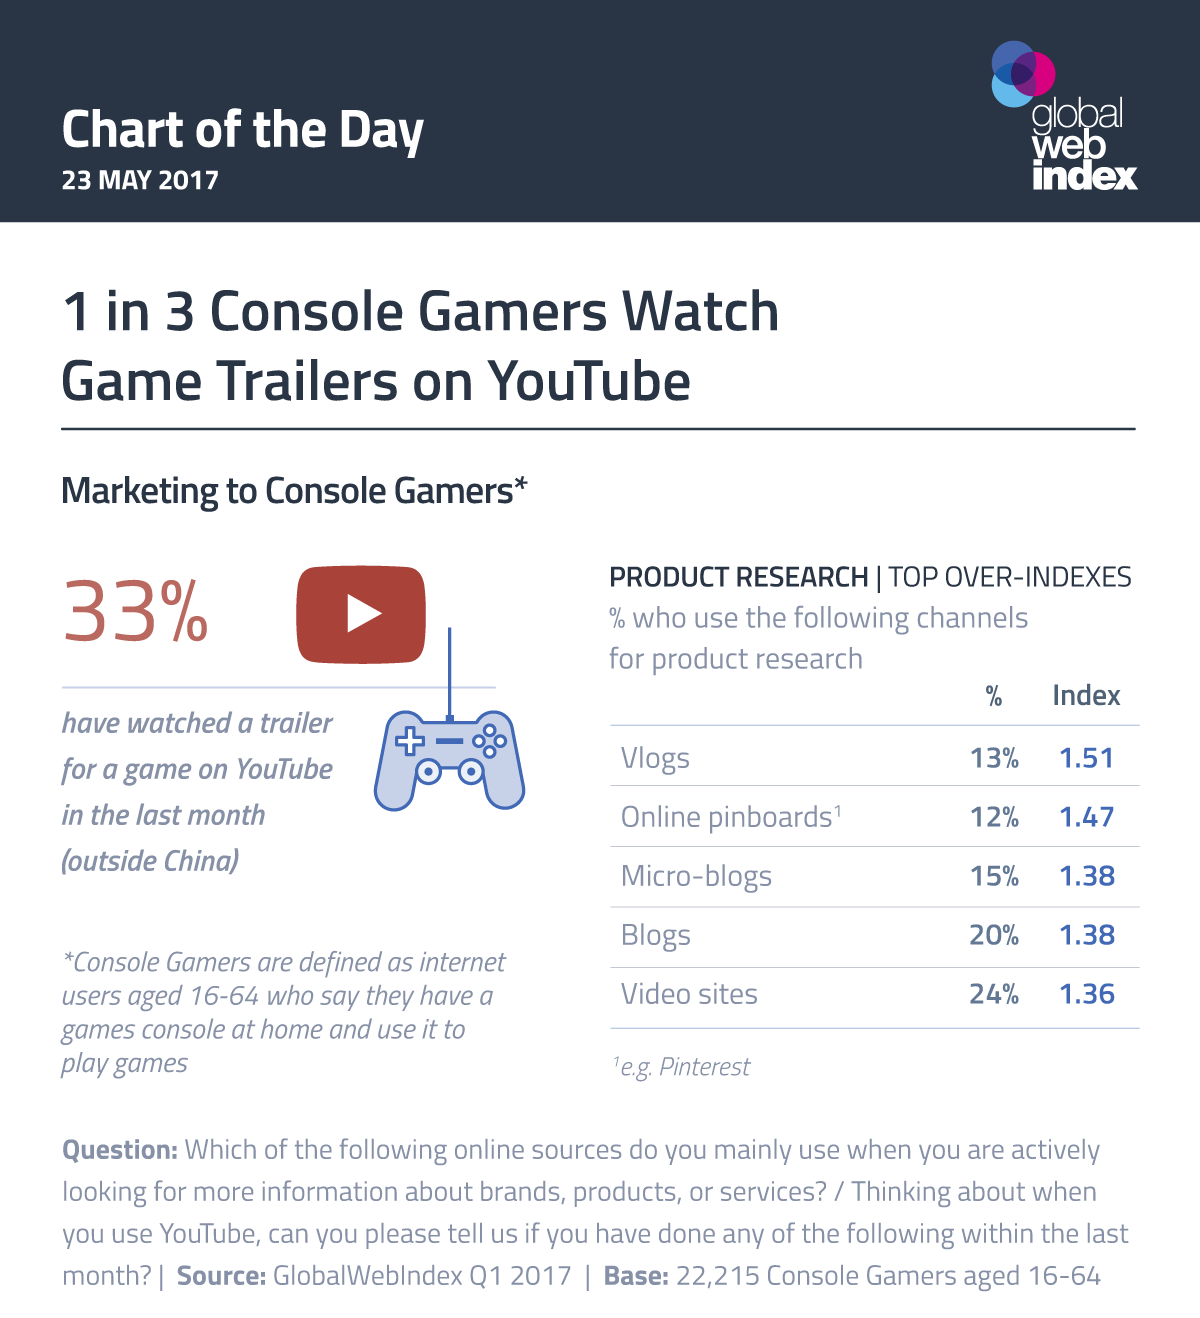 1 in 3 Console Gamers Watch Game Trailers on YouTube